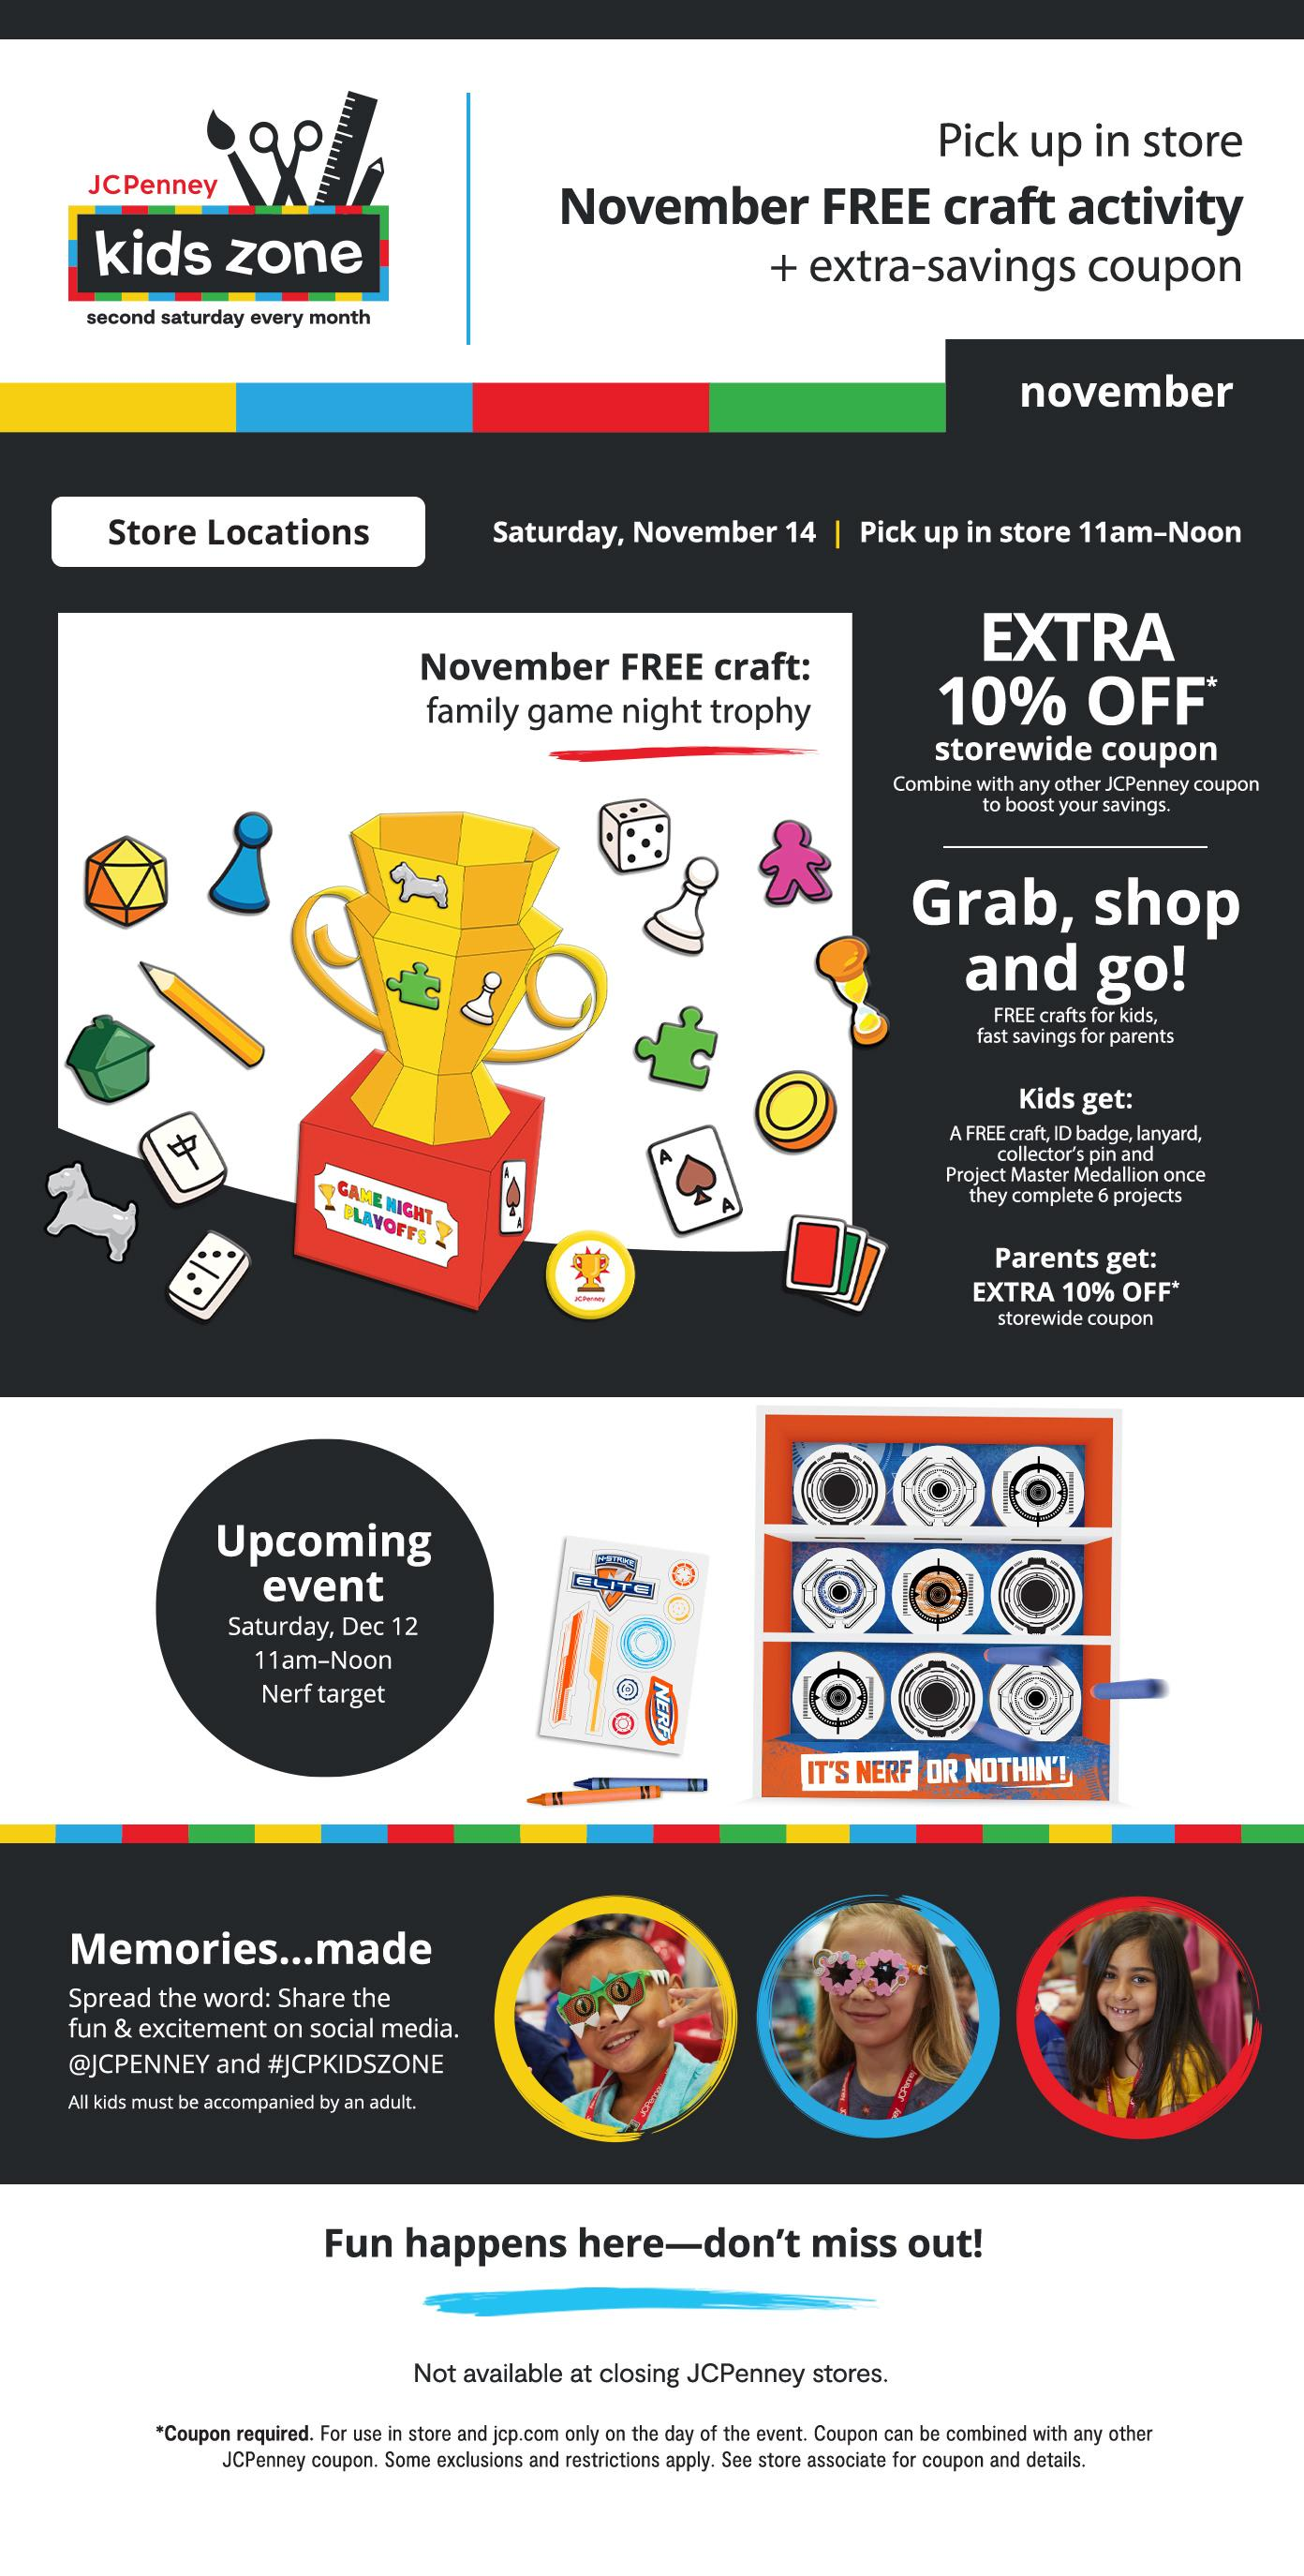 Kids Zone every 2nd Saturday. Nov 14th. Pick up in store November FREE craft activity + extra-savings coupon